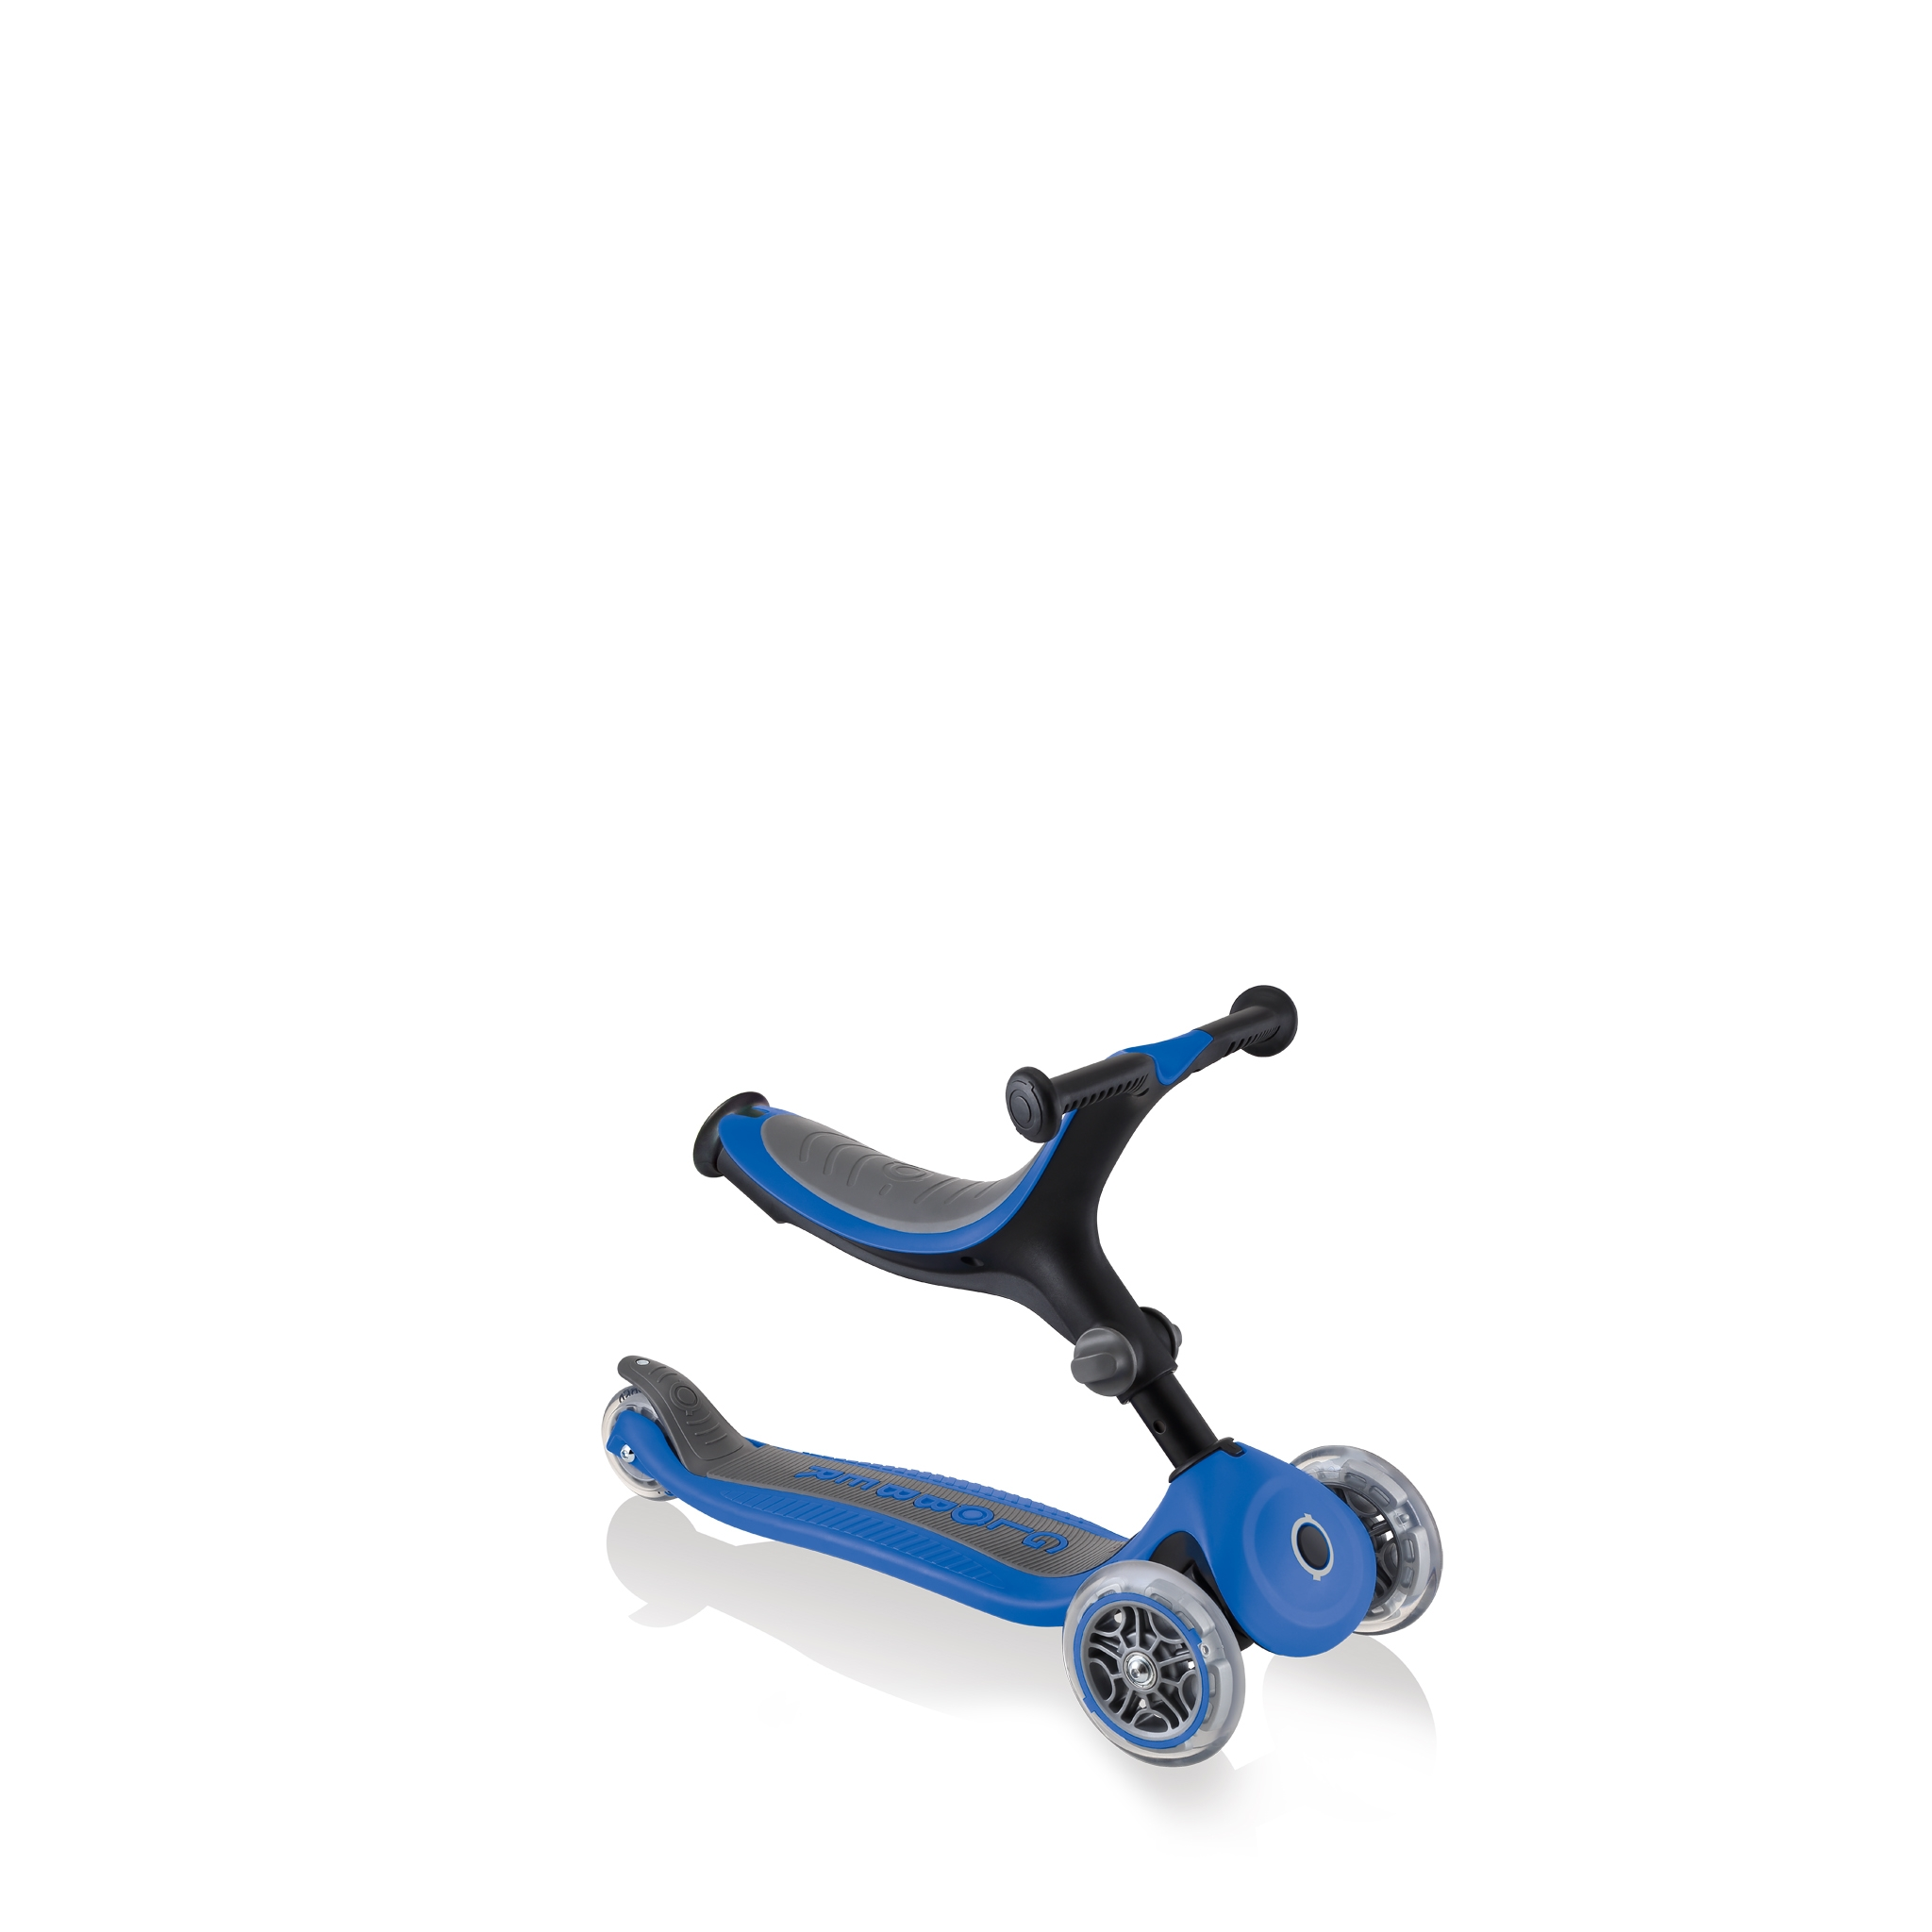 Globber-GO-UP-FOLDABLE-3-in-1-scooter-for-toddlers-walking-bike-mode 1